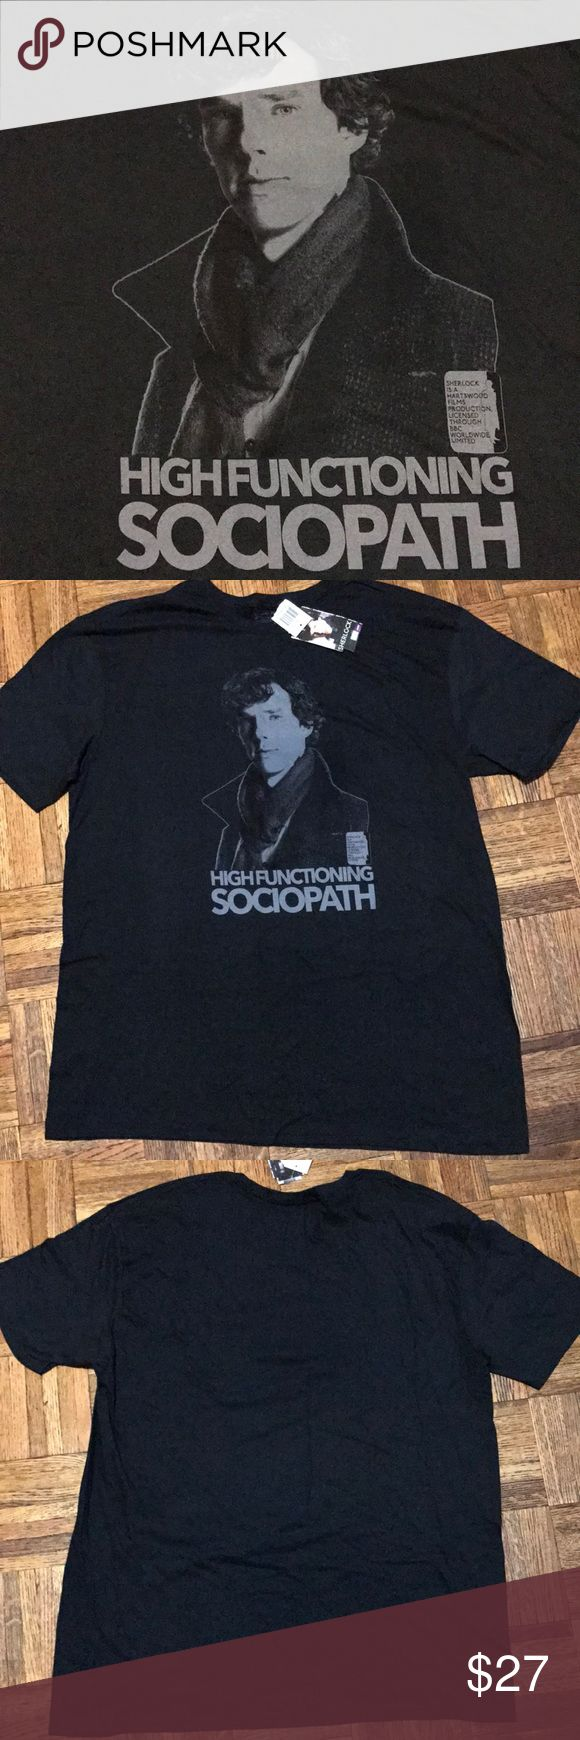 Sherlock Men's Tee Size XL This is a Sherlock tee. Please see pictures for details. Size XL Sherlock Shirts Tees - Short Sleeve